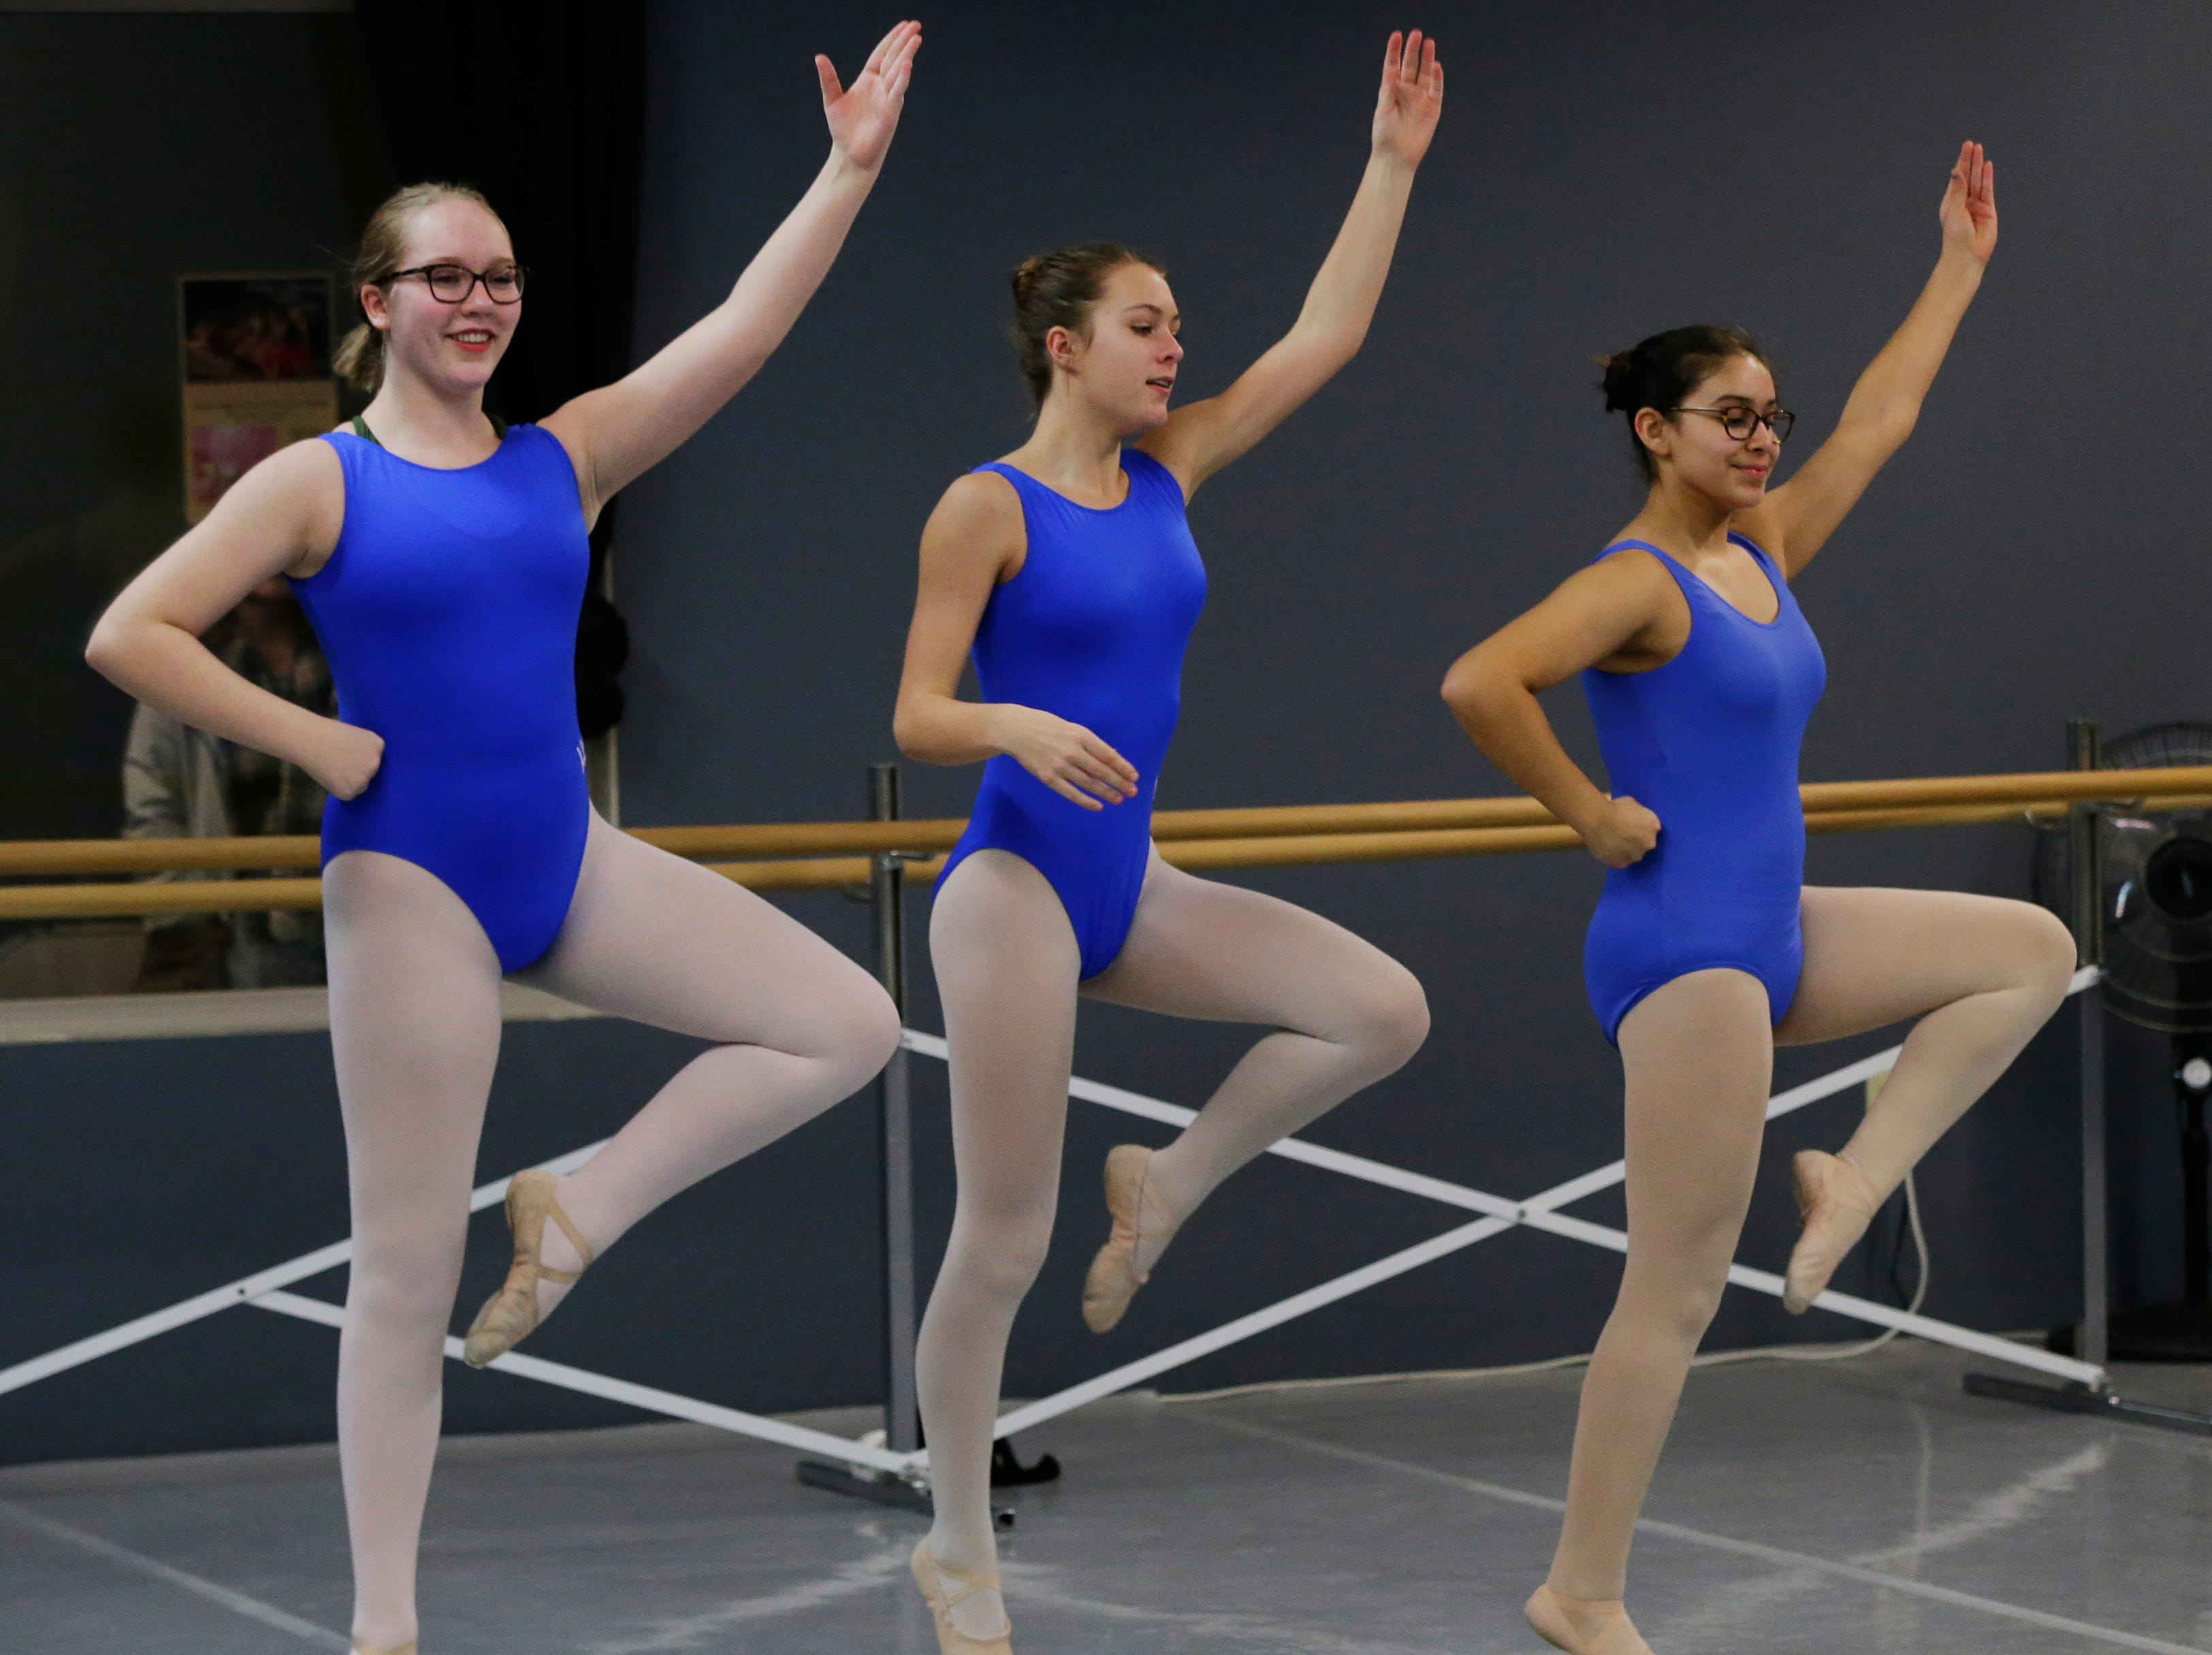 Anya Harrington, Meredith Weston, and Vanessa Torres dance their routine.  Dancers practice ballet at Valley Academy of the Arts located at 139 N. Lake Street in Neenah, Wis., Tuesday, December 4, 2018.